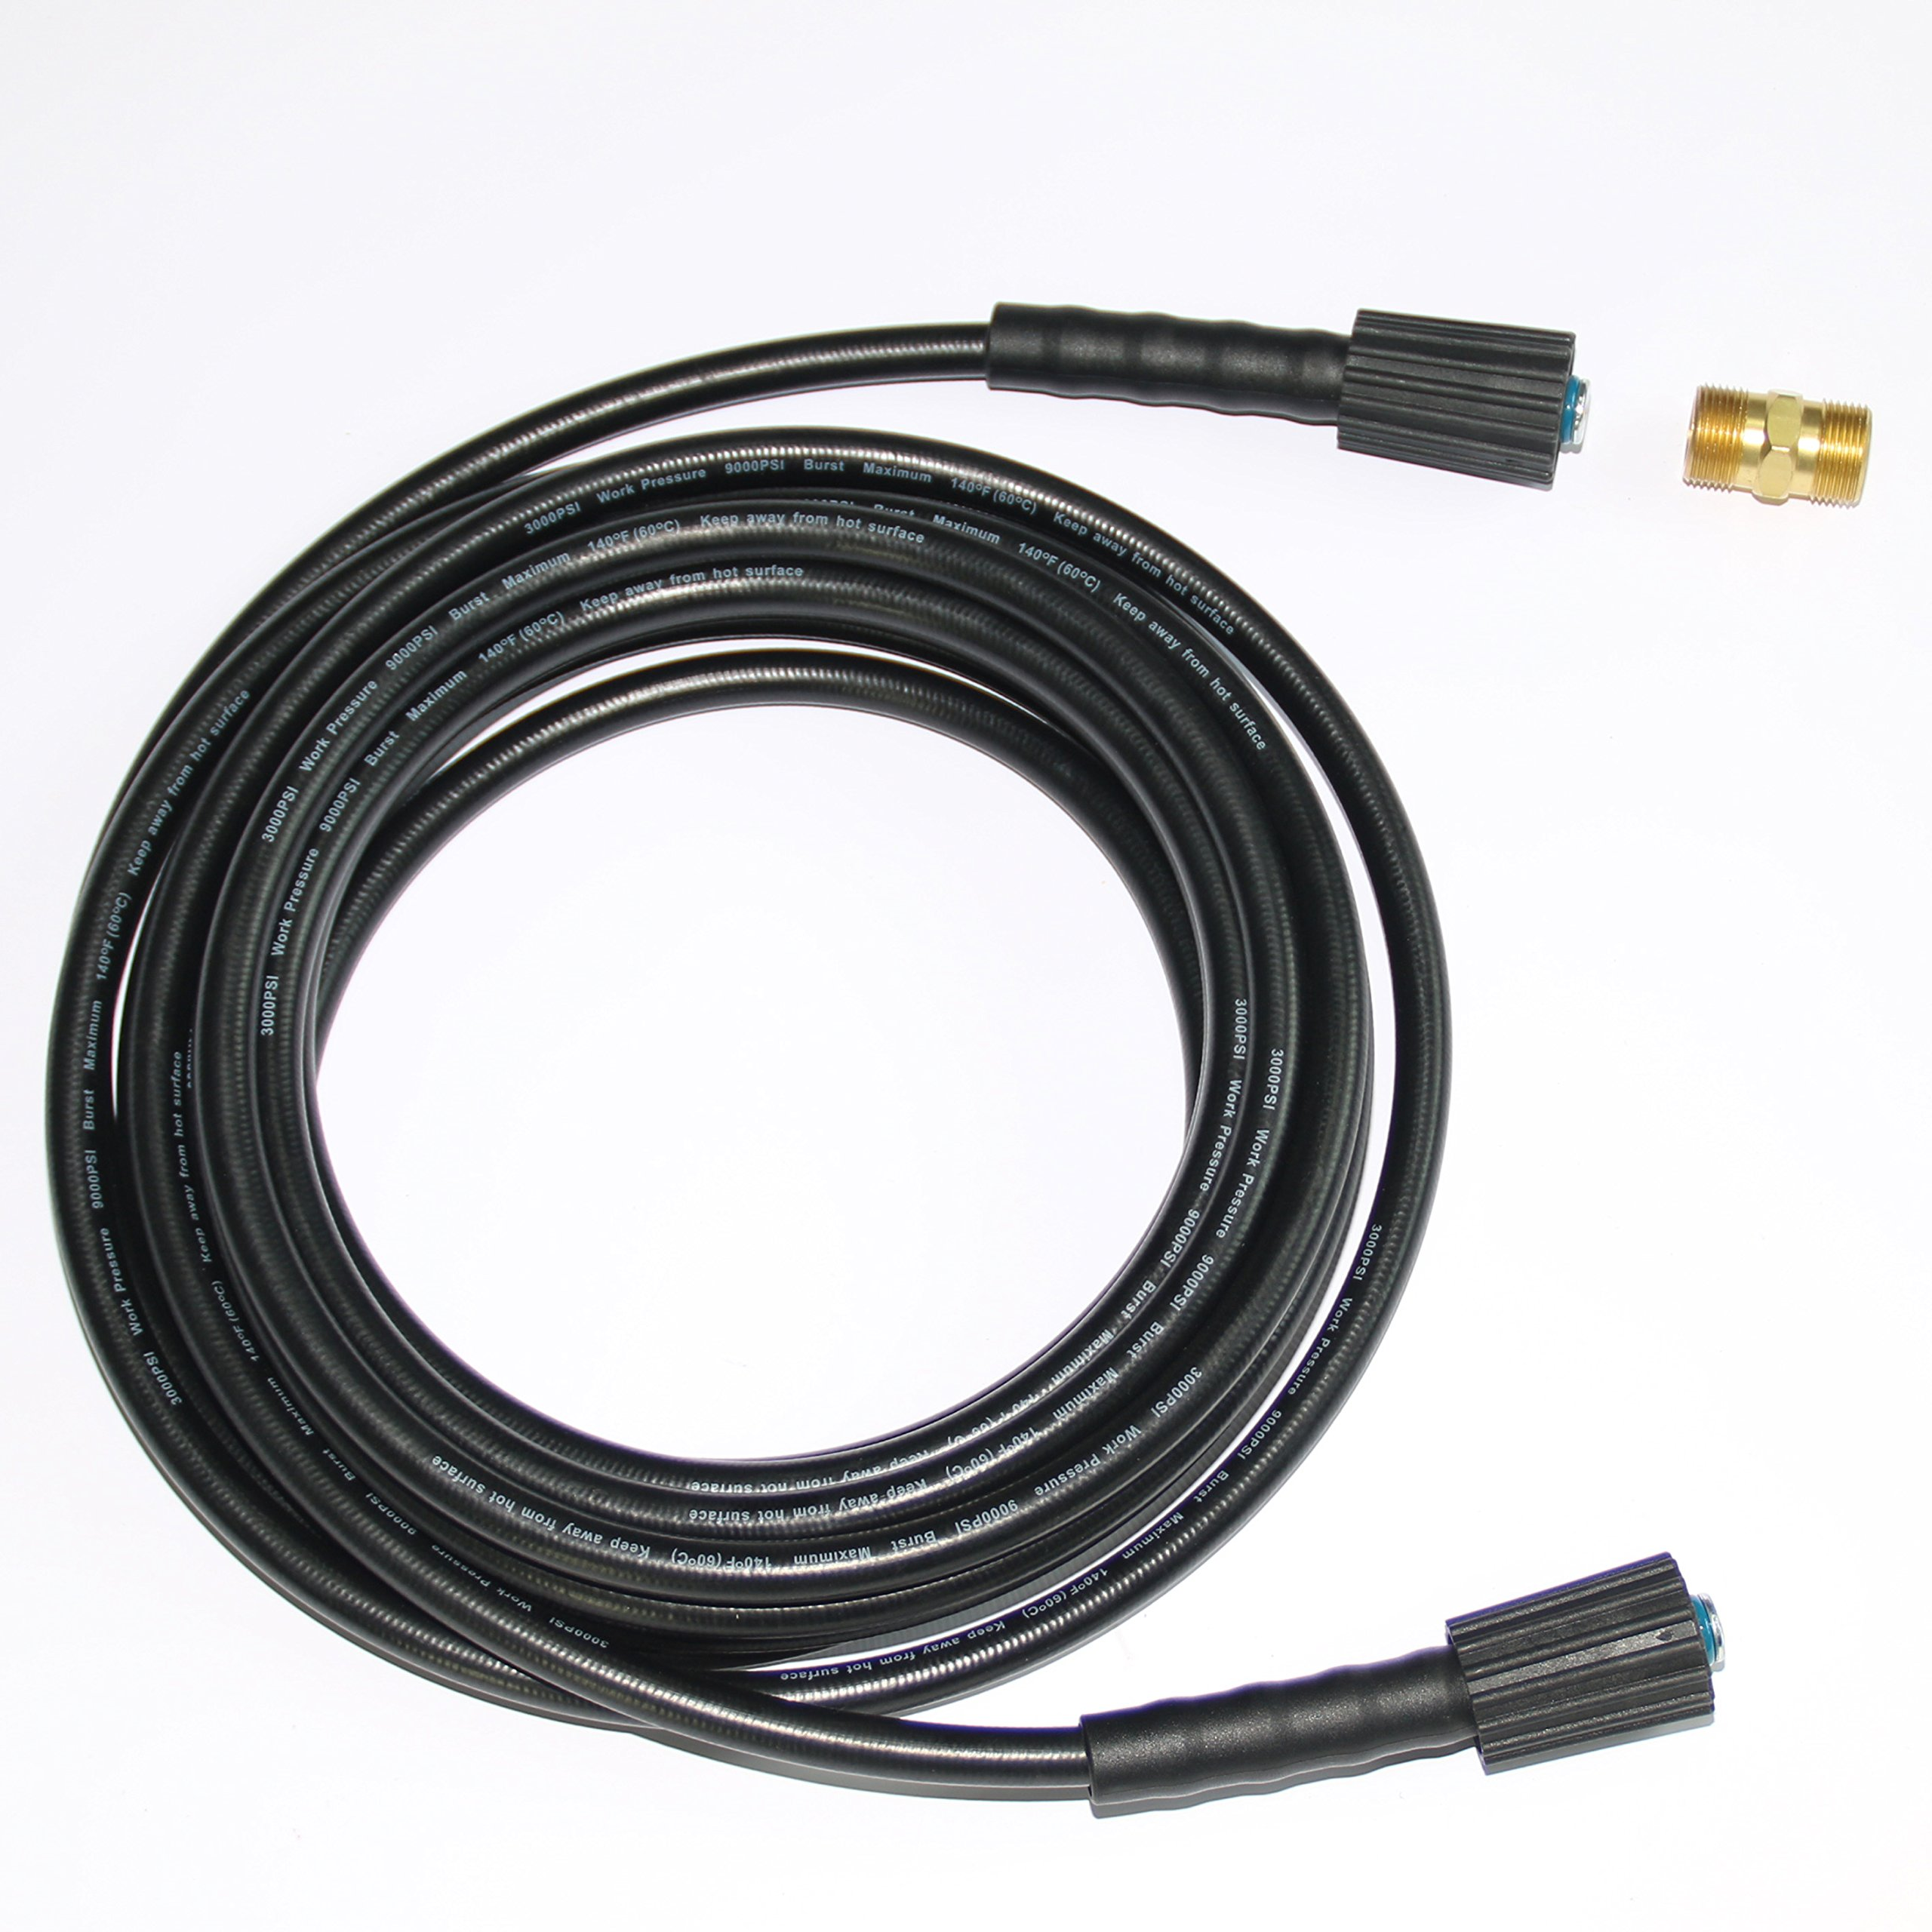 XZT 3000PSI 35FT/10m High Pressure Washer Extension Hose with Adapter by XZT